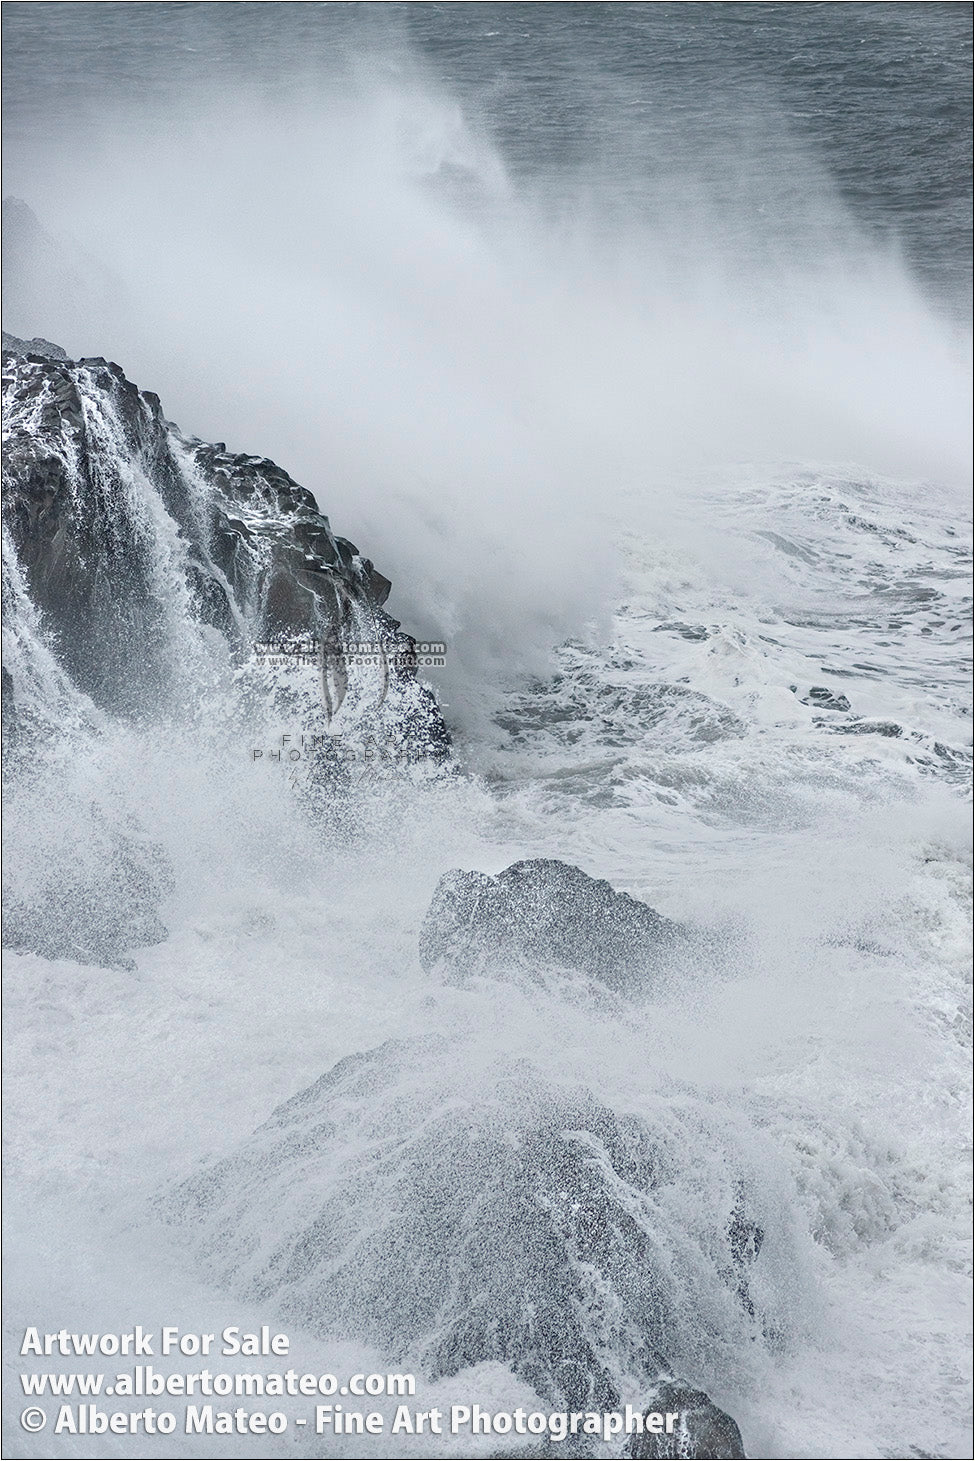 Sea Gale, Breaking Waves, Dyorhaley, Iceland. 5/5